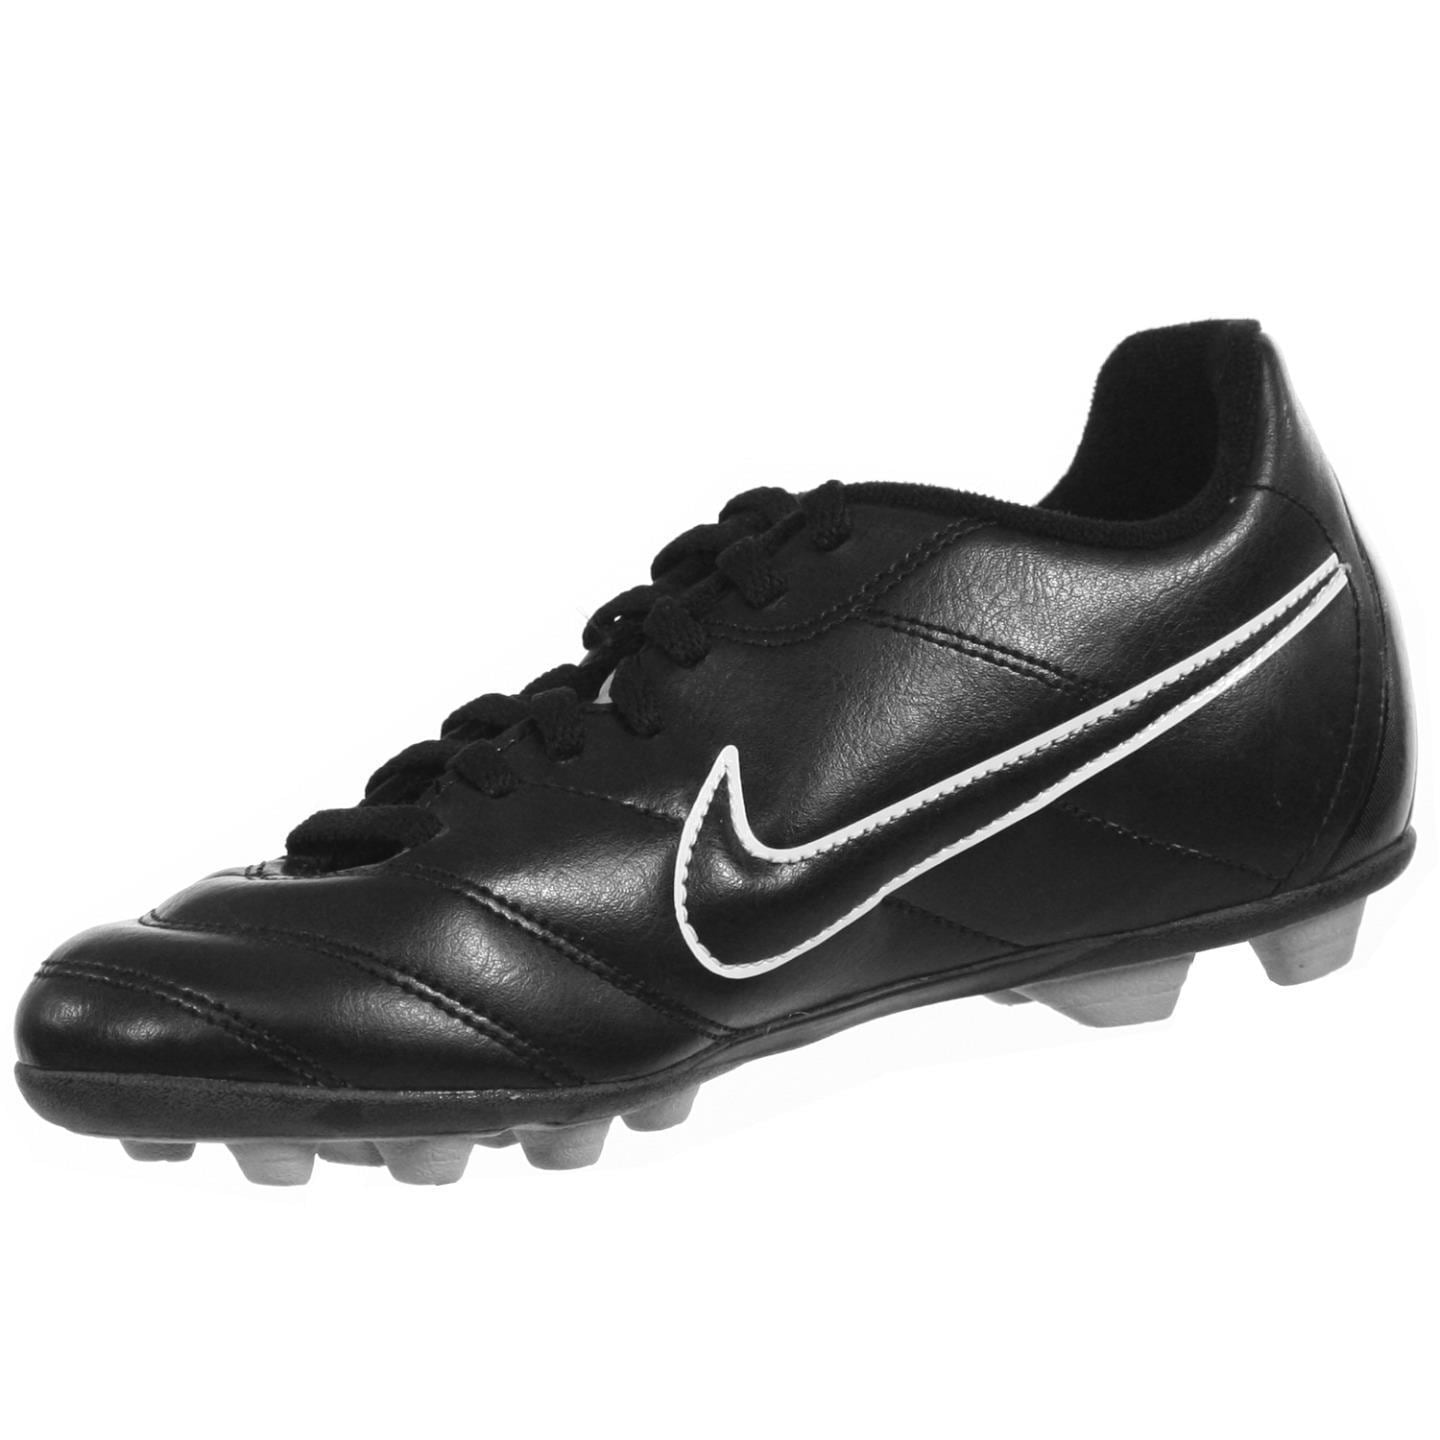 f98b612f7176 Shop NIKE JR TIEMPO RIO INTERCHANGE FG-R Youth Soccer Cleat - Free Shipping  On Orders Over $45 - Overstock - 15341564